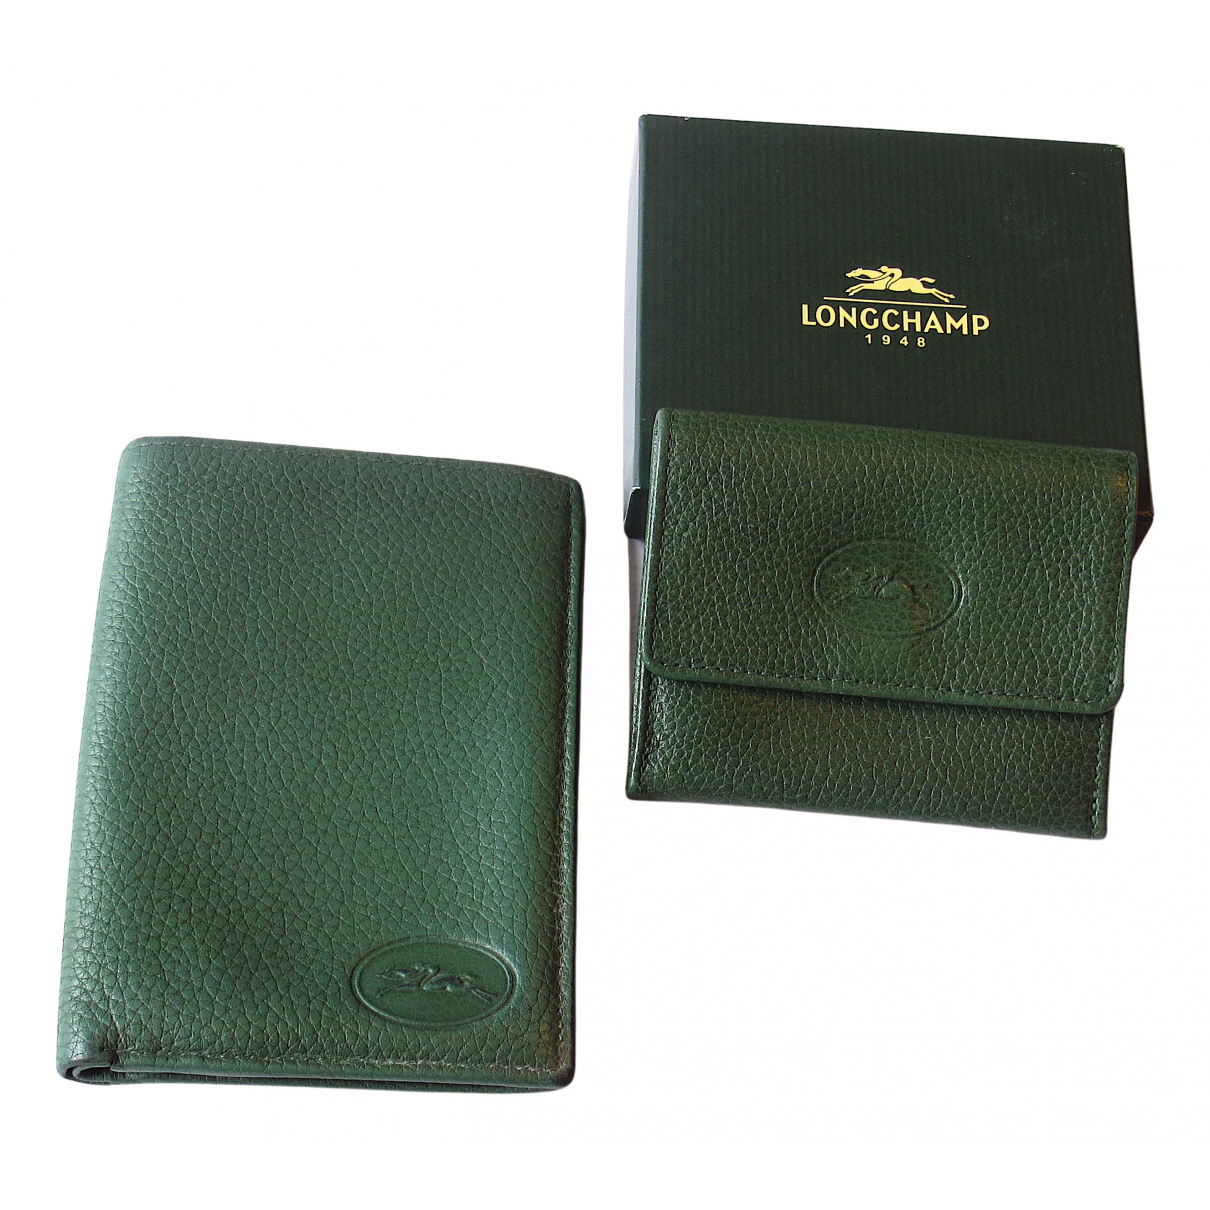 Longchamp N Green Leather Purses, wallet & cases for Women N